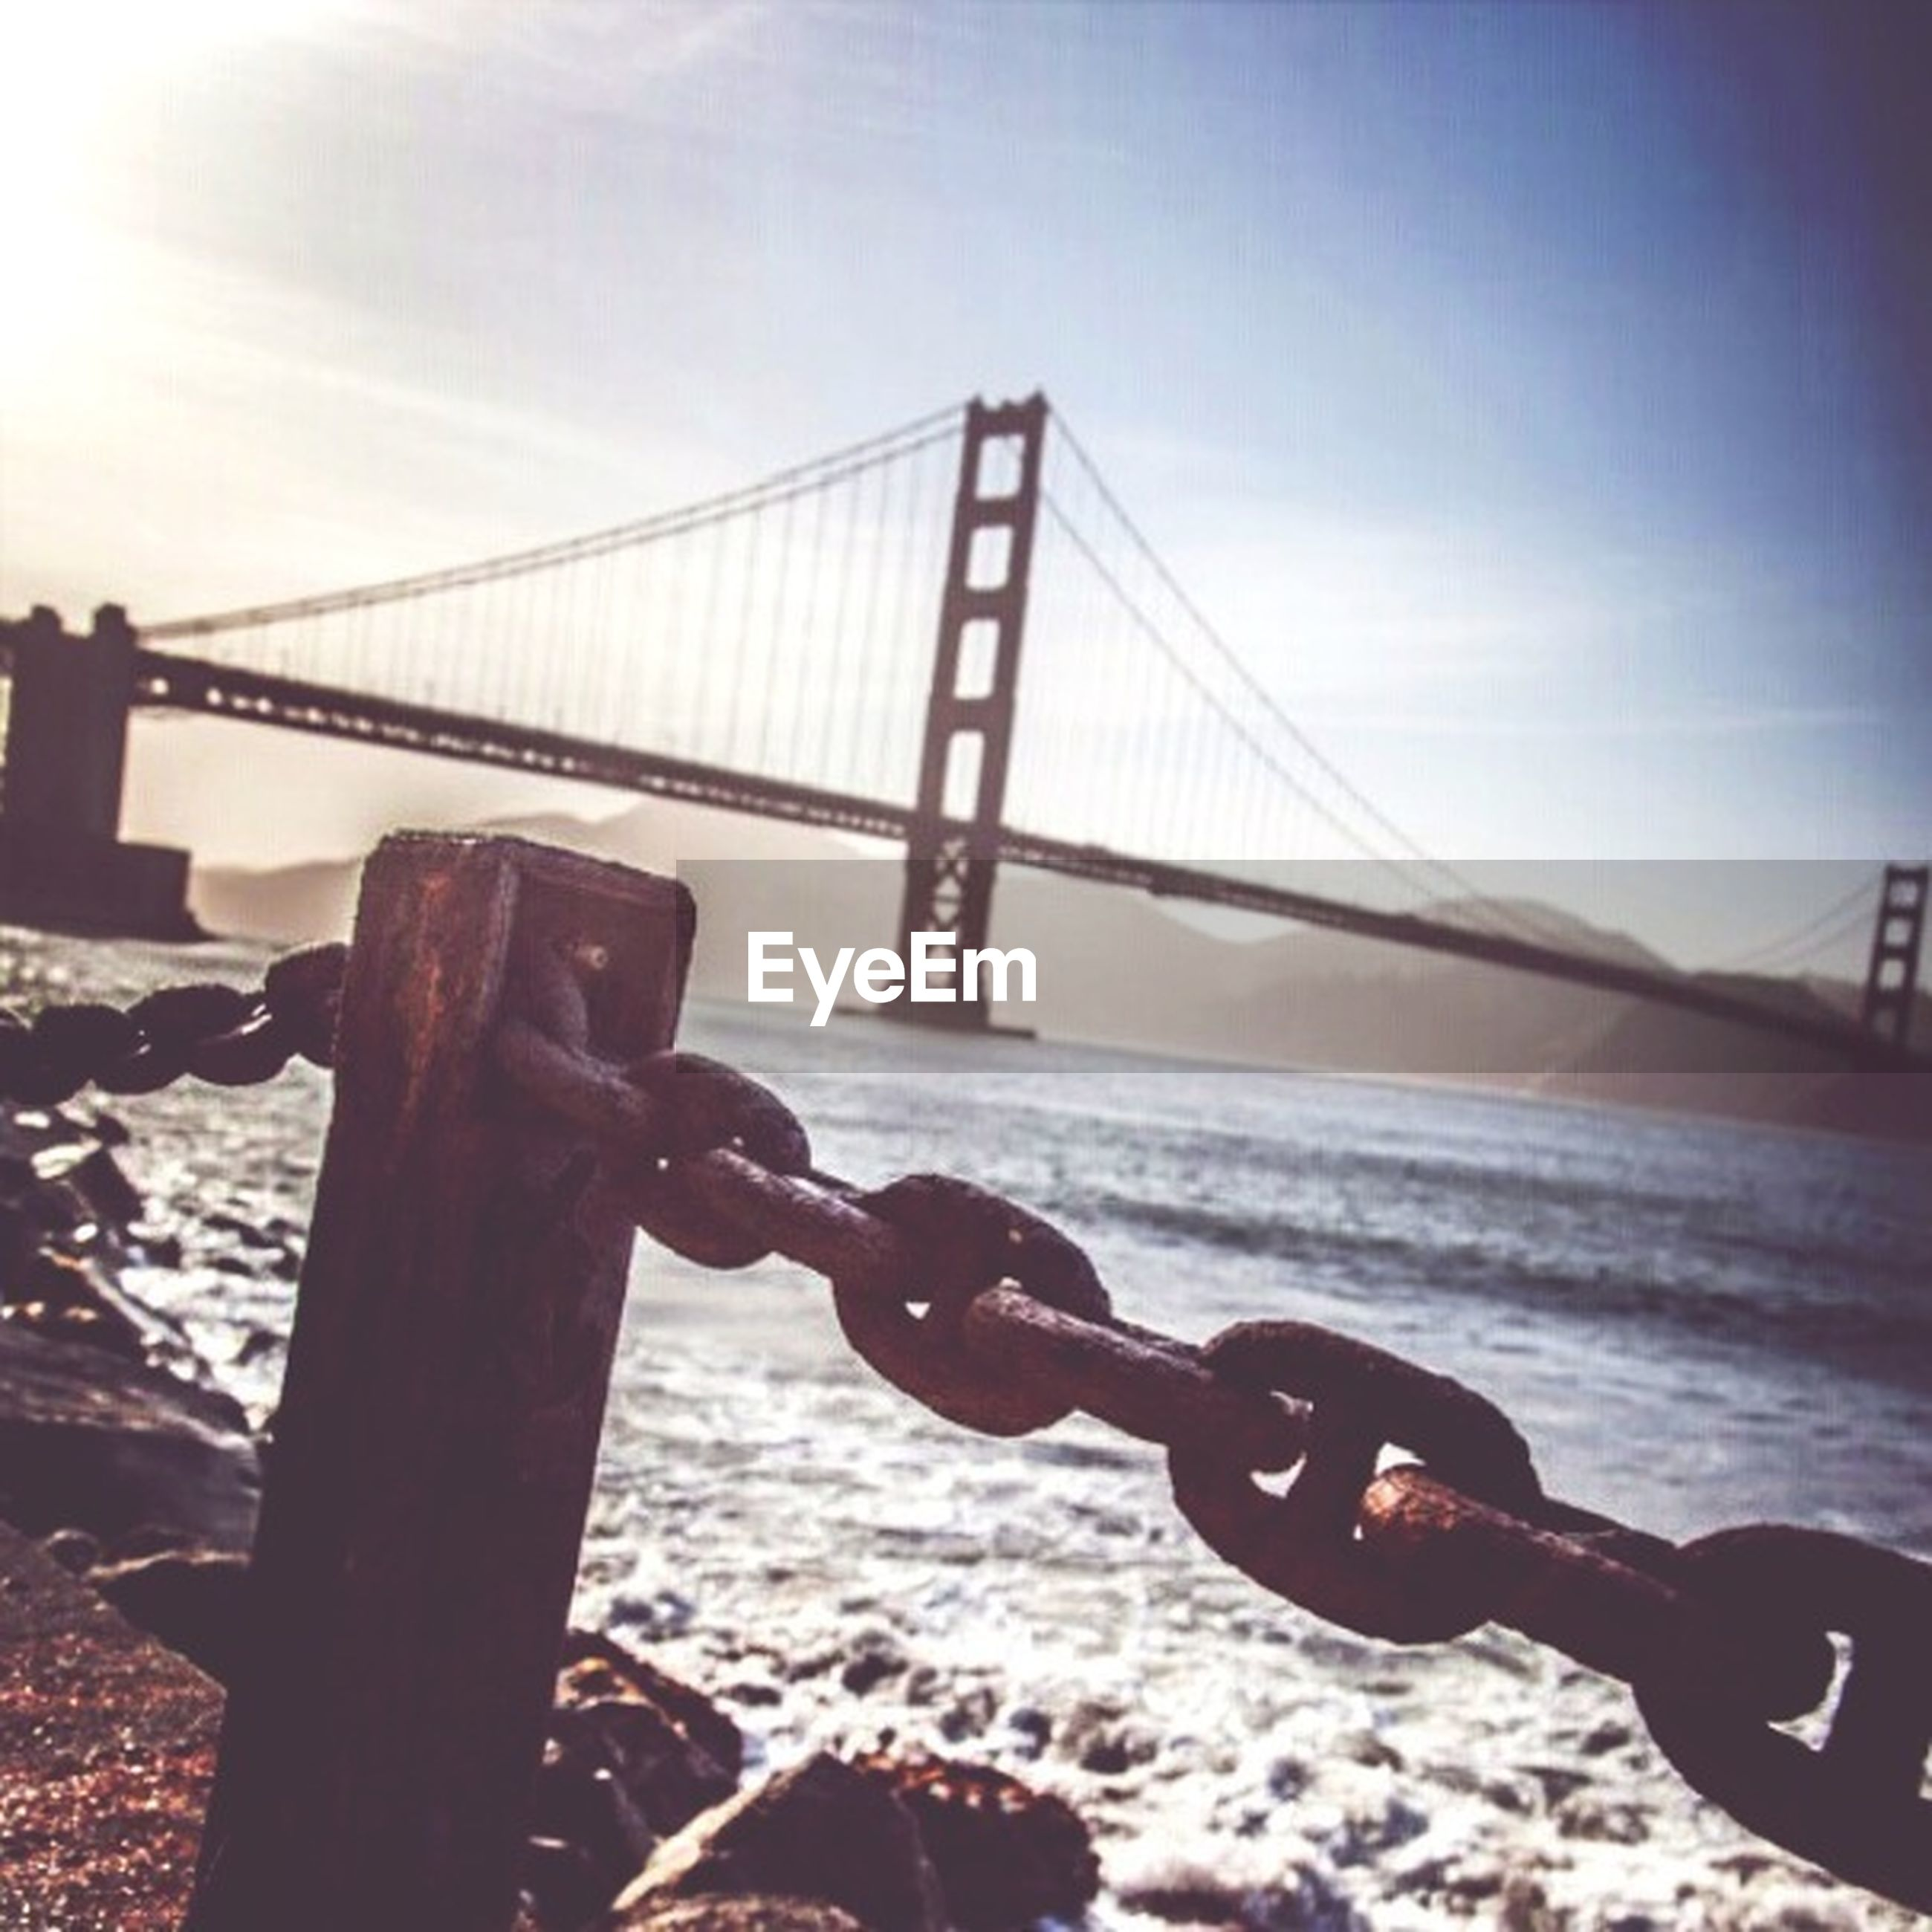 water, metal, sea, sky, bridge - man made structure, connection, railing, metallic, built structure, chain, sunlight, silhouette, protection, beach, strength, outdoors, nature, focus on foreground, river, engineering